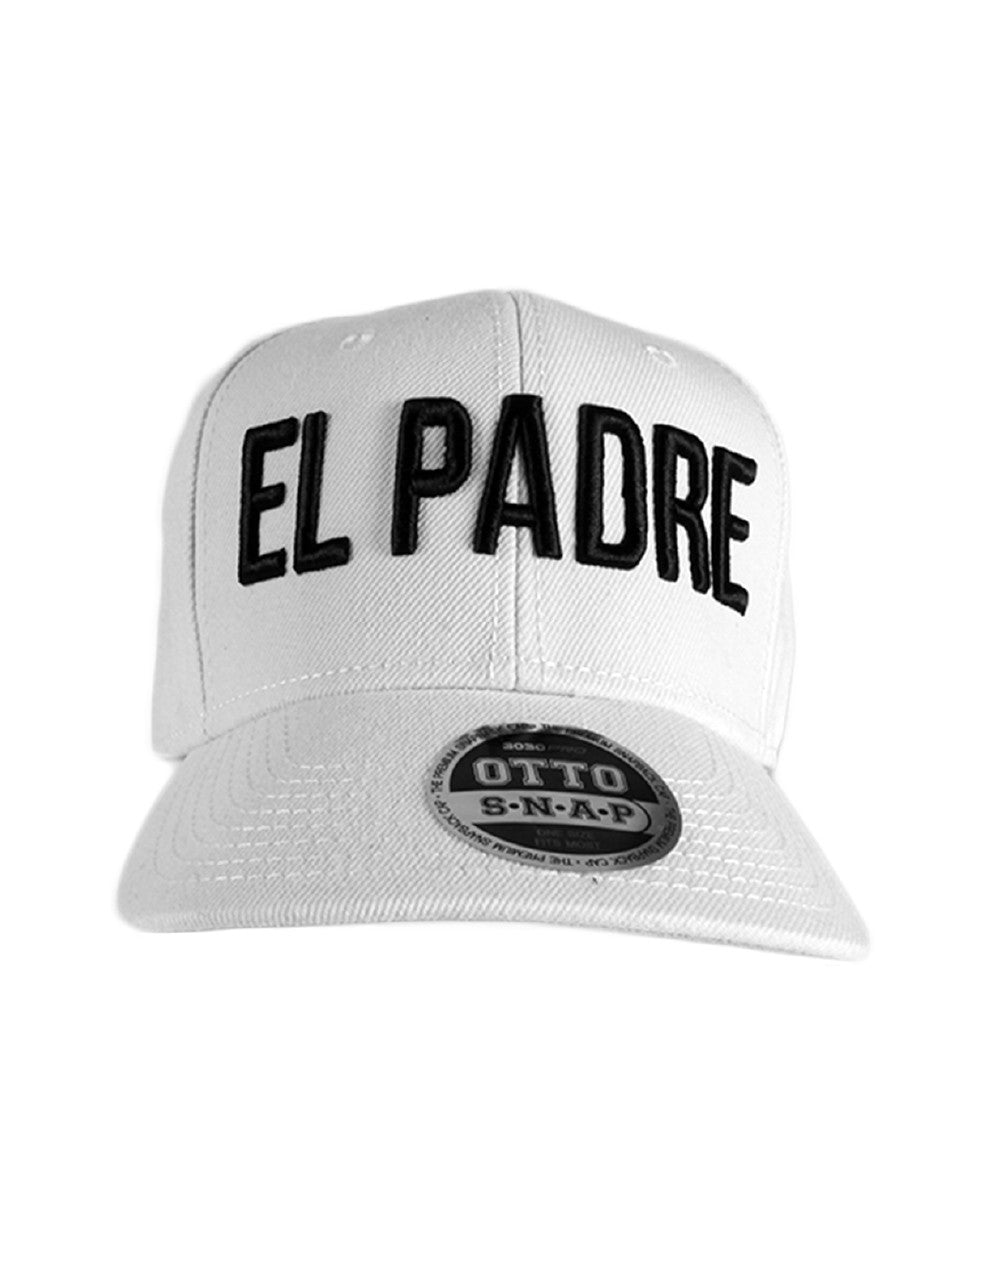 EL PADRE SNAP BACK HAT